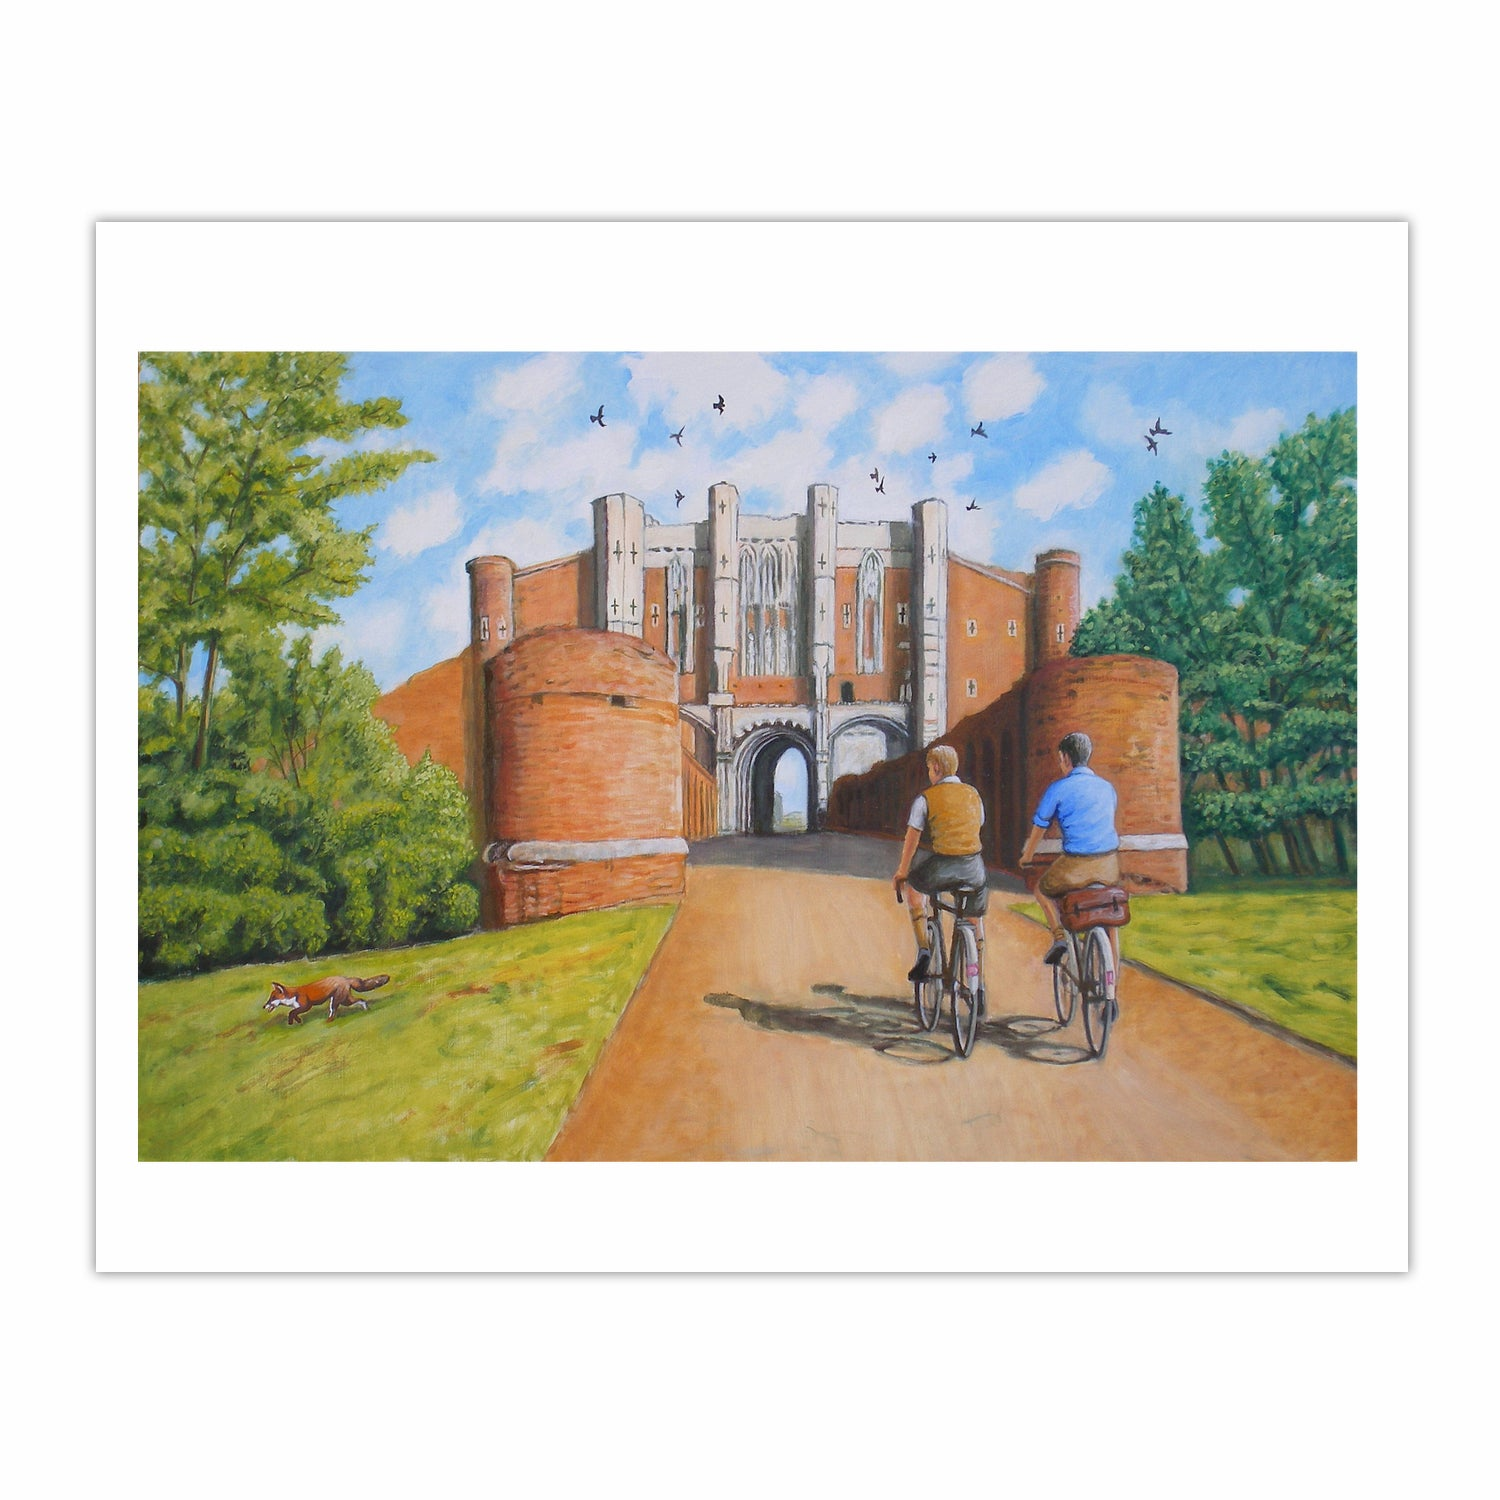 Arrival at Thornton Abbey Gatehouse (2013) oil on linen, 71 x 107 cm